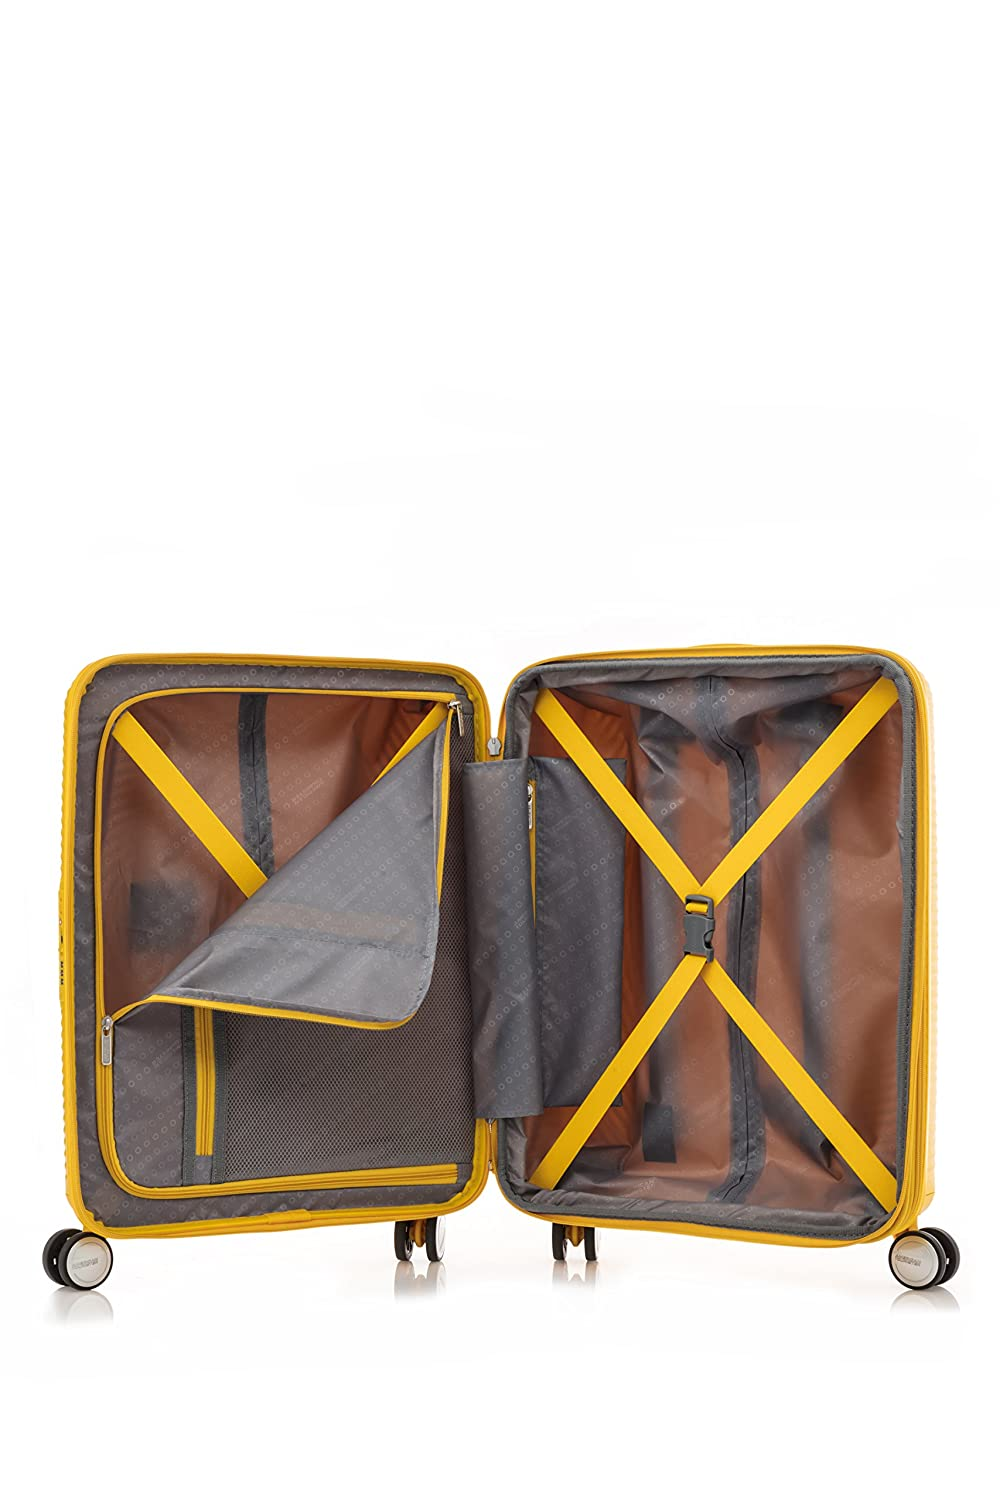 American Tourister Curio Spinner 3-Piece Nested Luggage Set Golden Yellow Checked-Medium Model:86231-1371